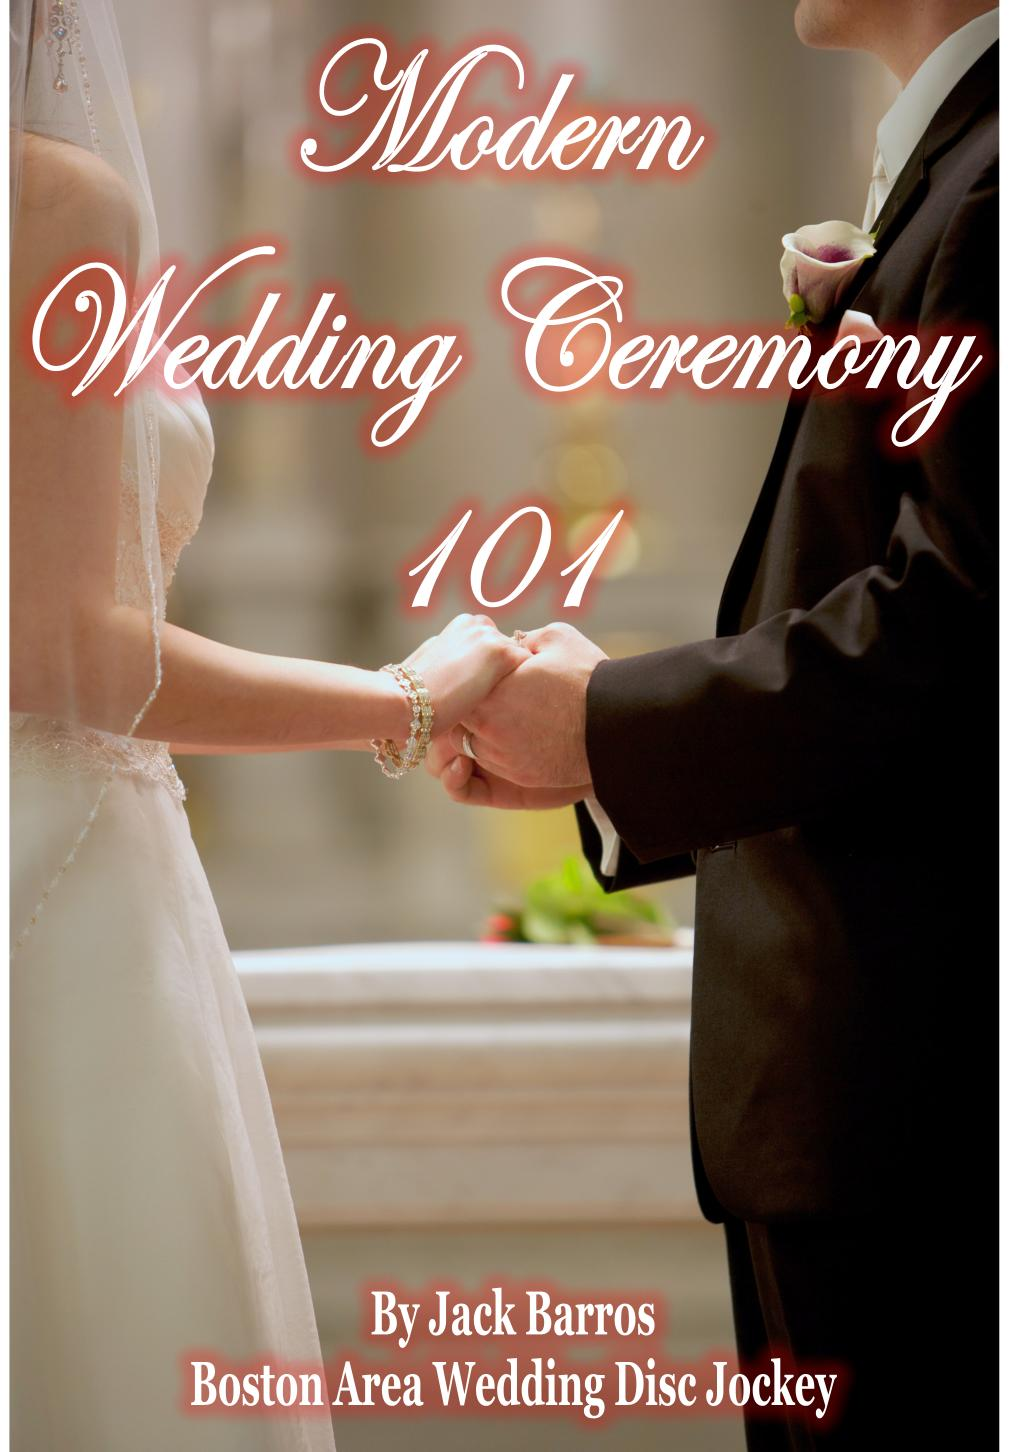 Modern_Wedding_Ceremony_101 Kindle Cover